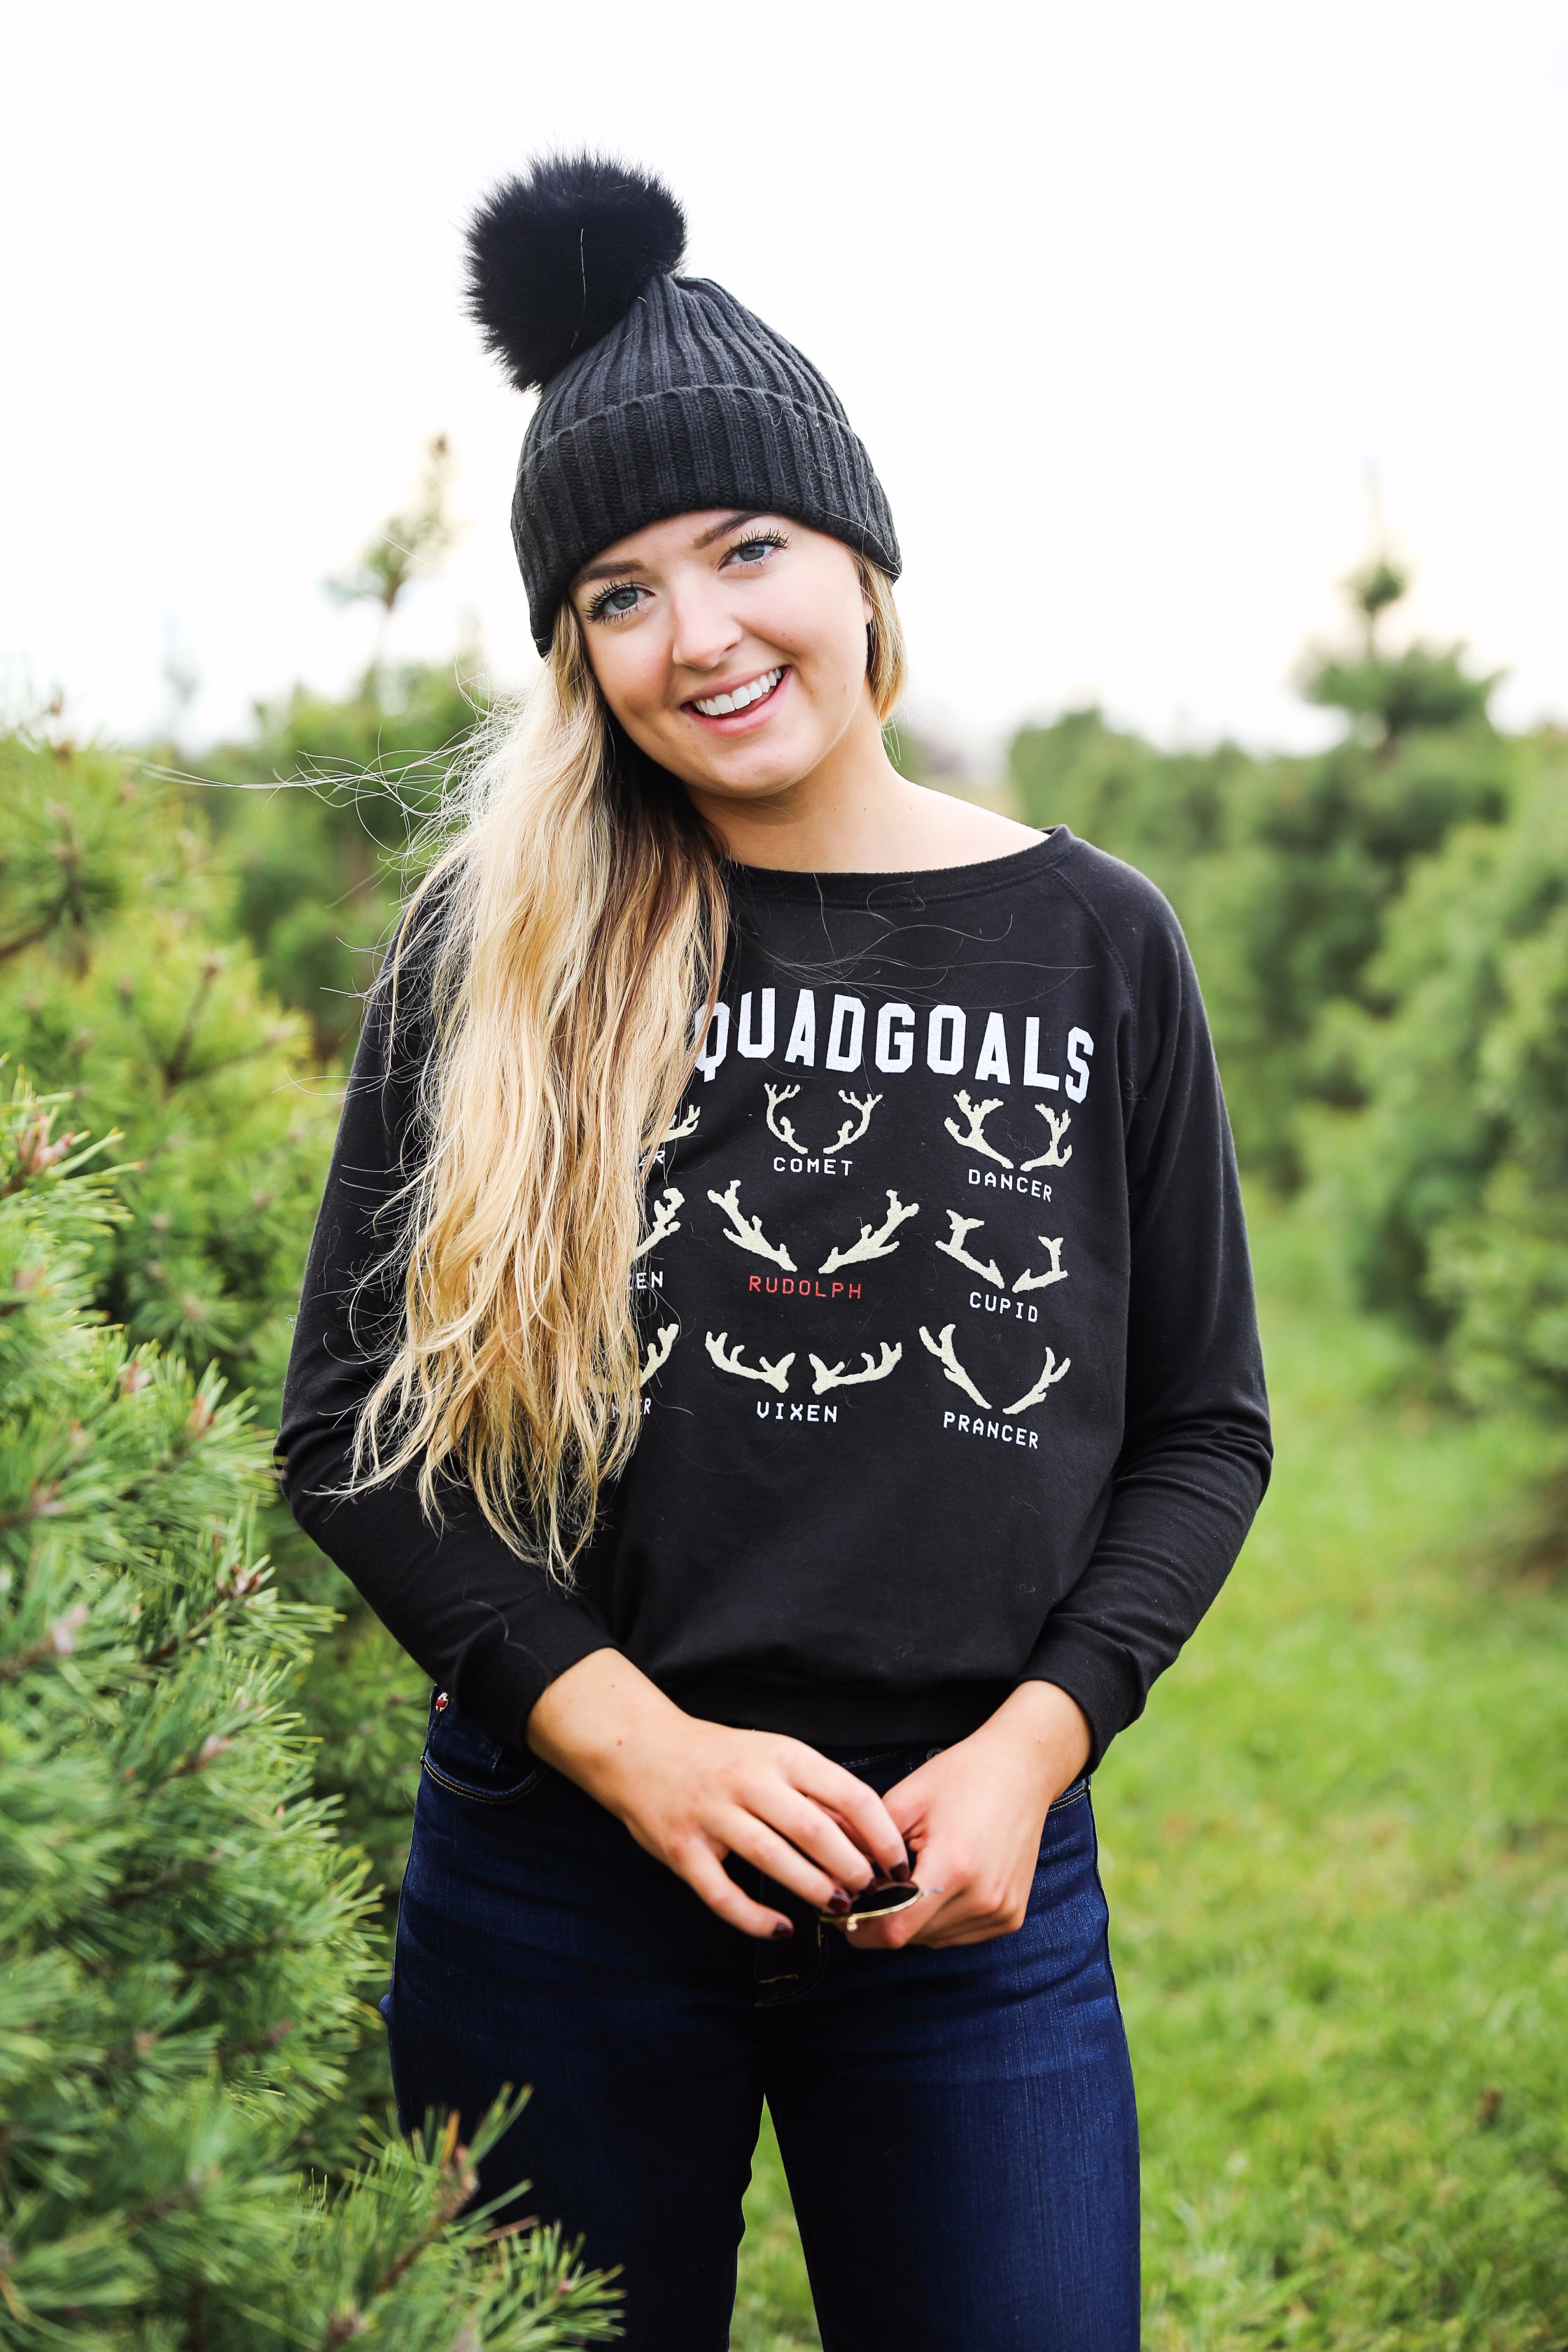 Christmas tree farm outfit idea! Squad goals with the reindeers shirt! Details on fashion blog daily dose of charm by lauren lindmark